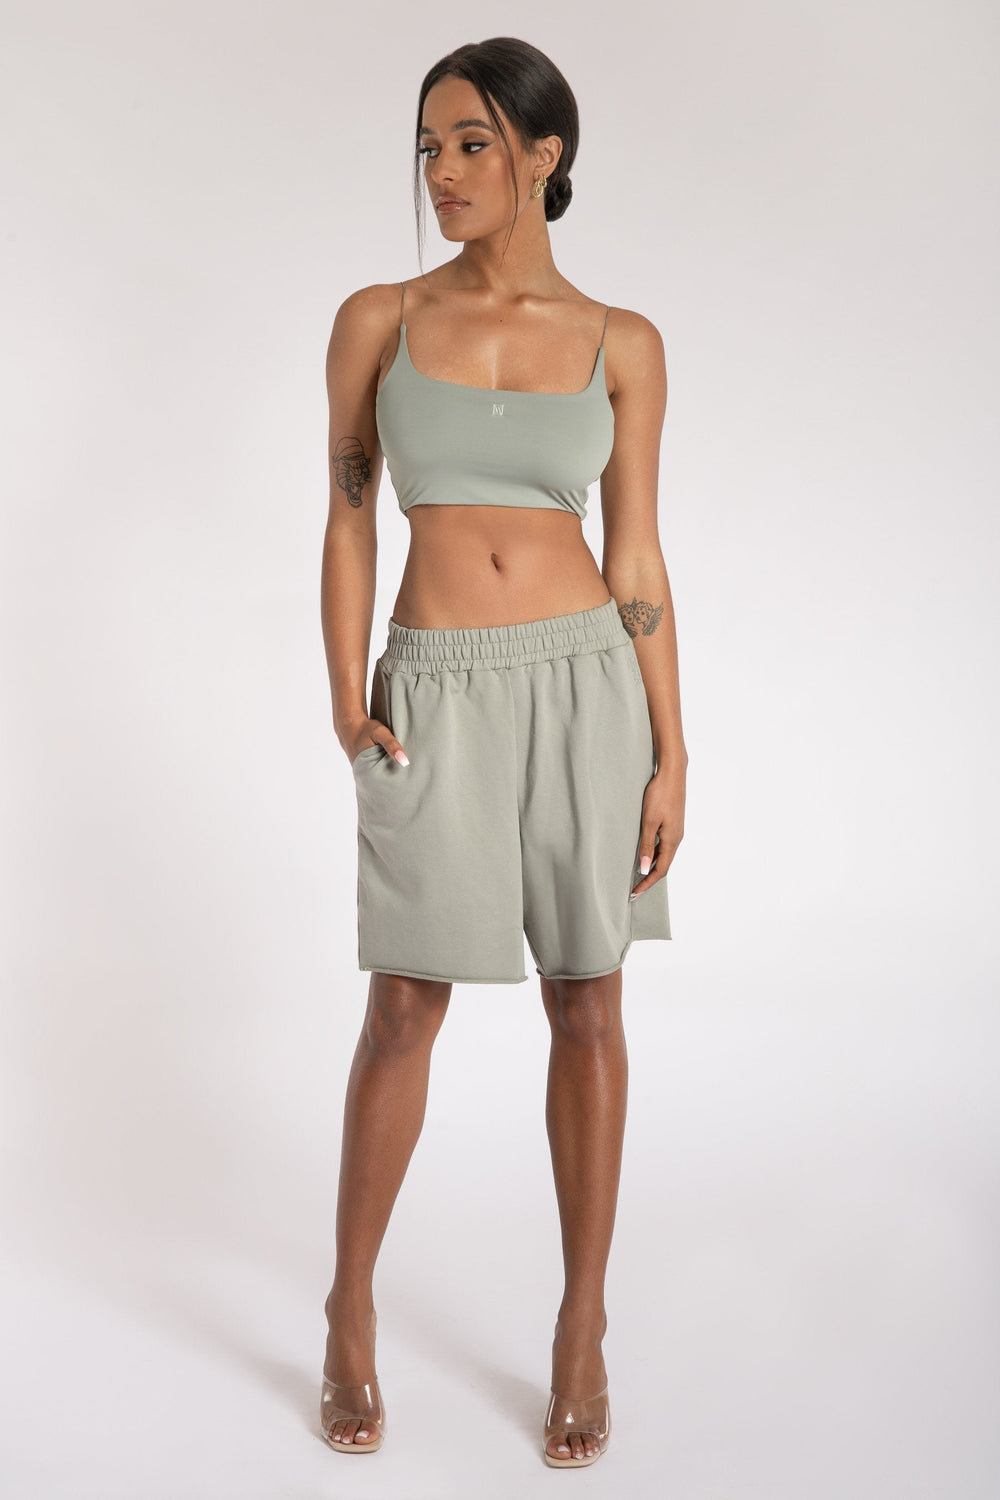 Kaiya Thin Strap Scoop Neck Crop Top - Sage - MESHKI ?id=15662366556235